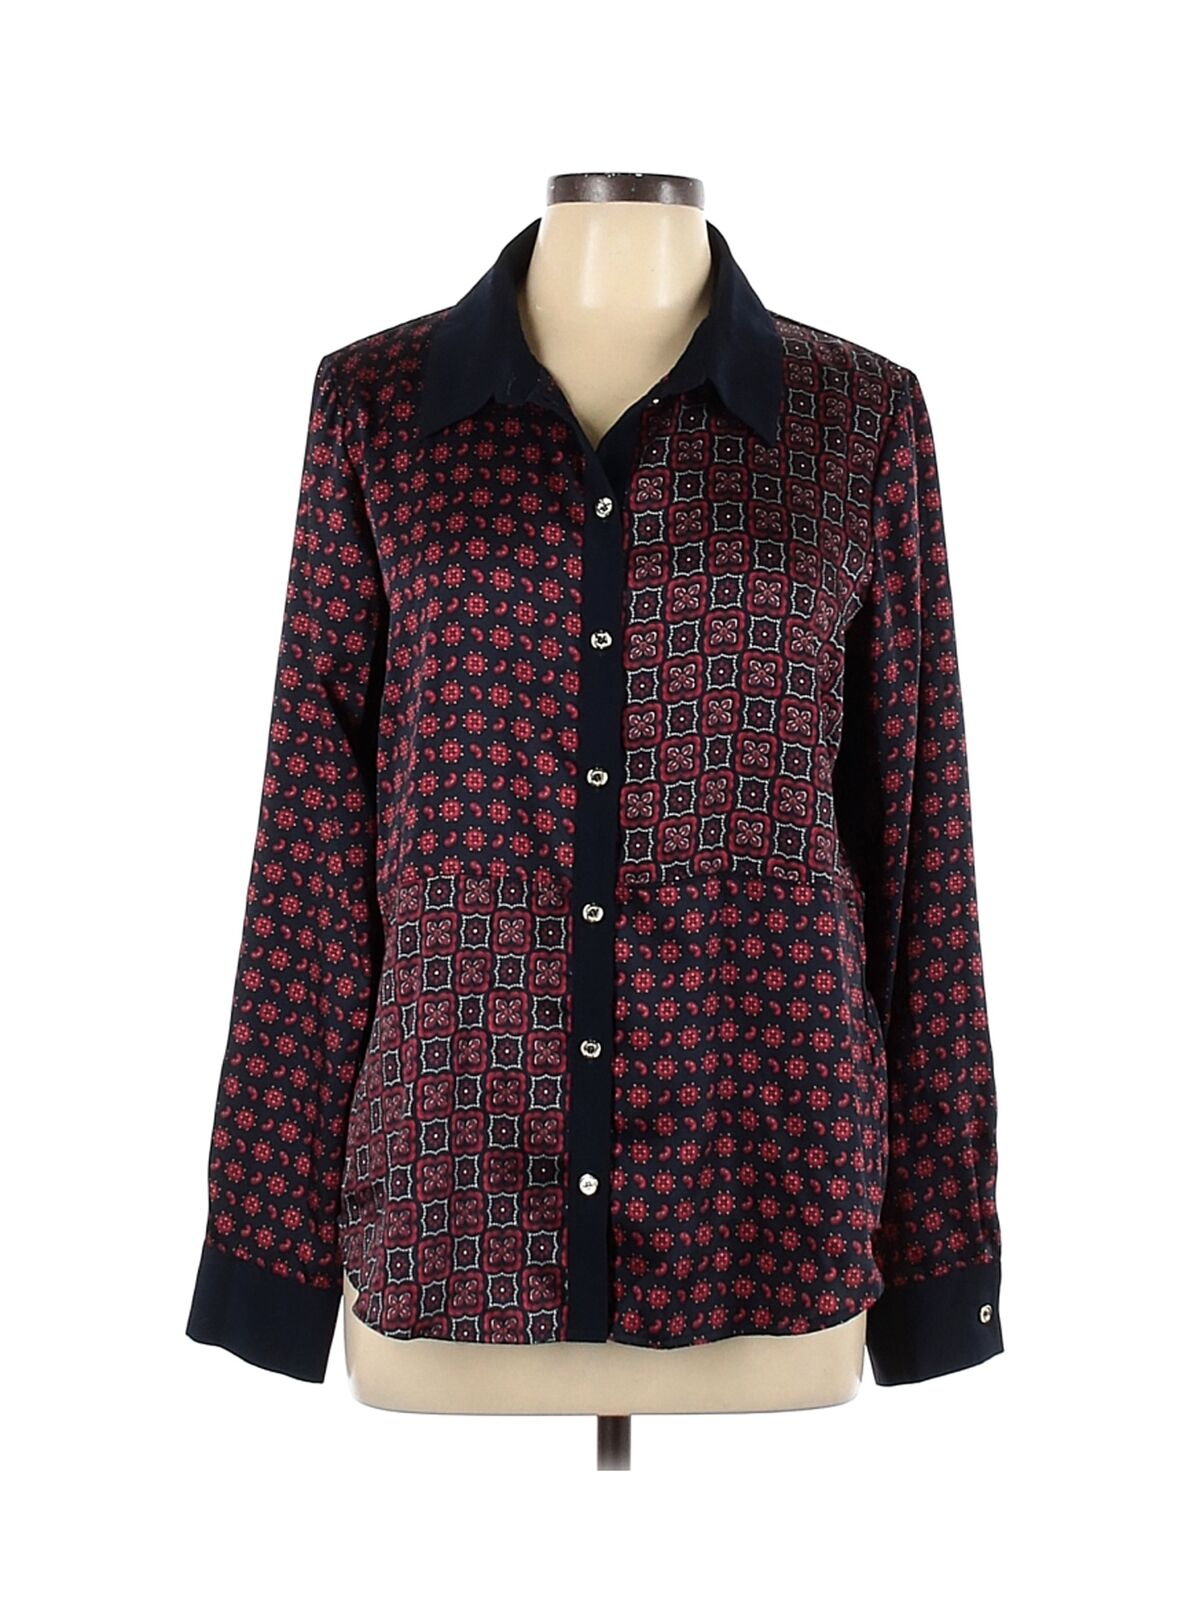 Tommy Hilfiger Women Brown Long Sleeve Blouse L - image 1